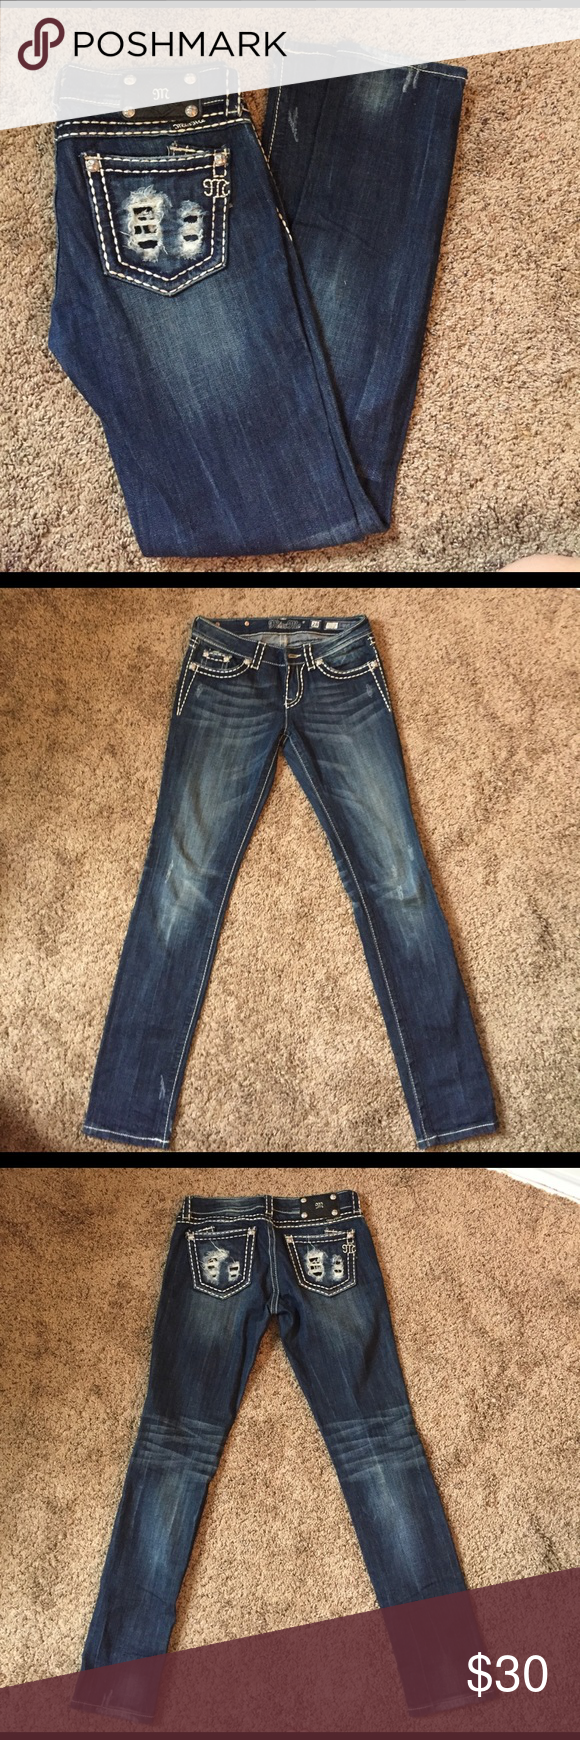 Miss me skinny jeans size dark blue colour jeans size and